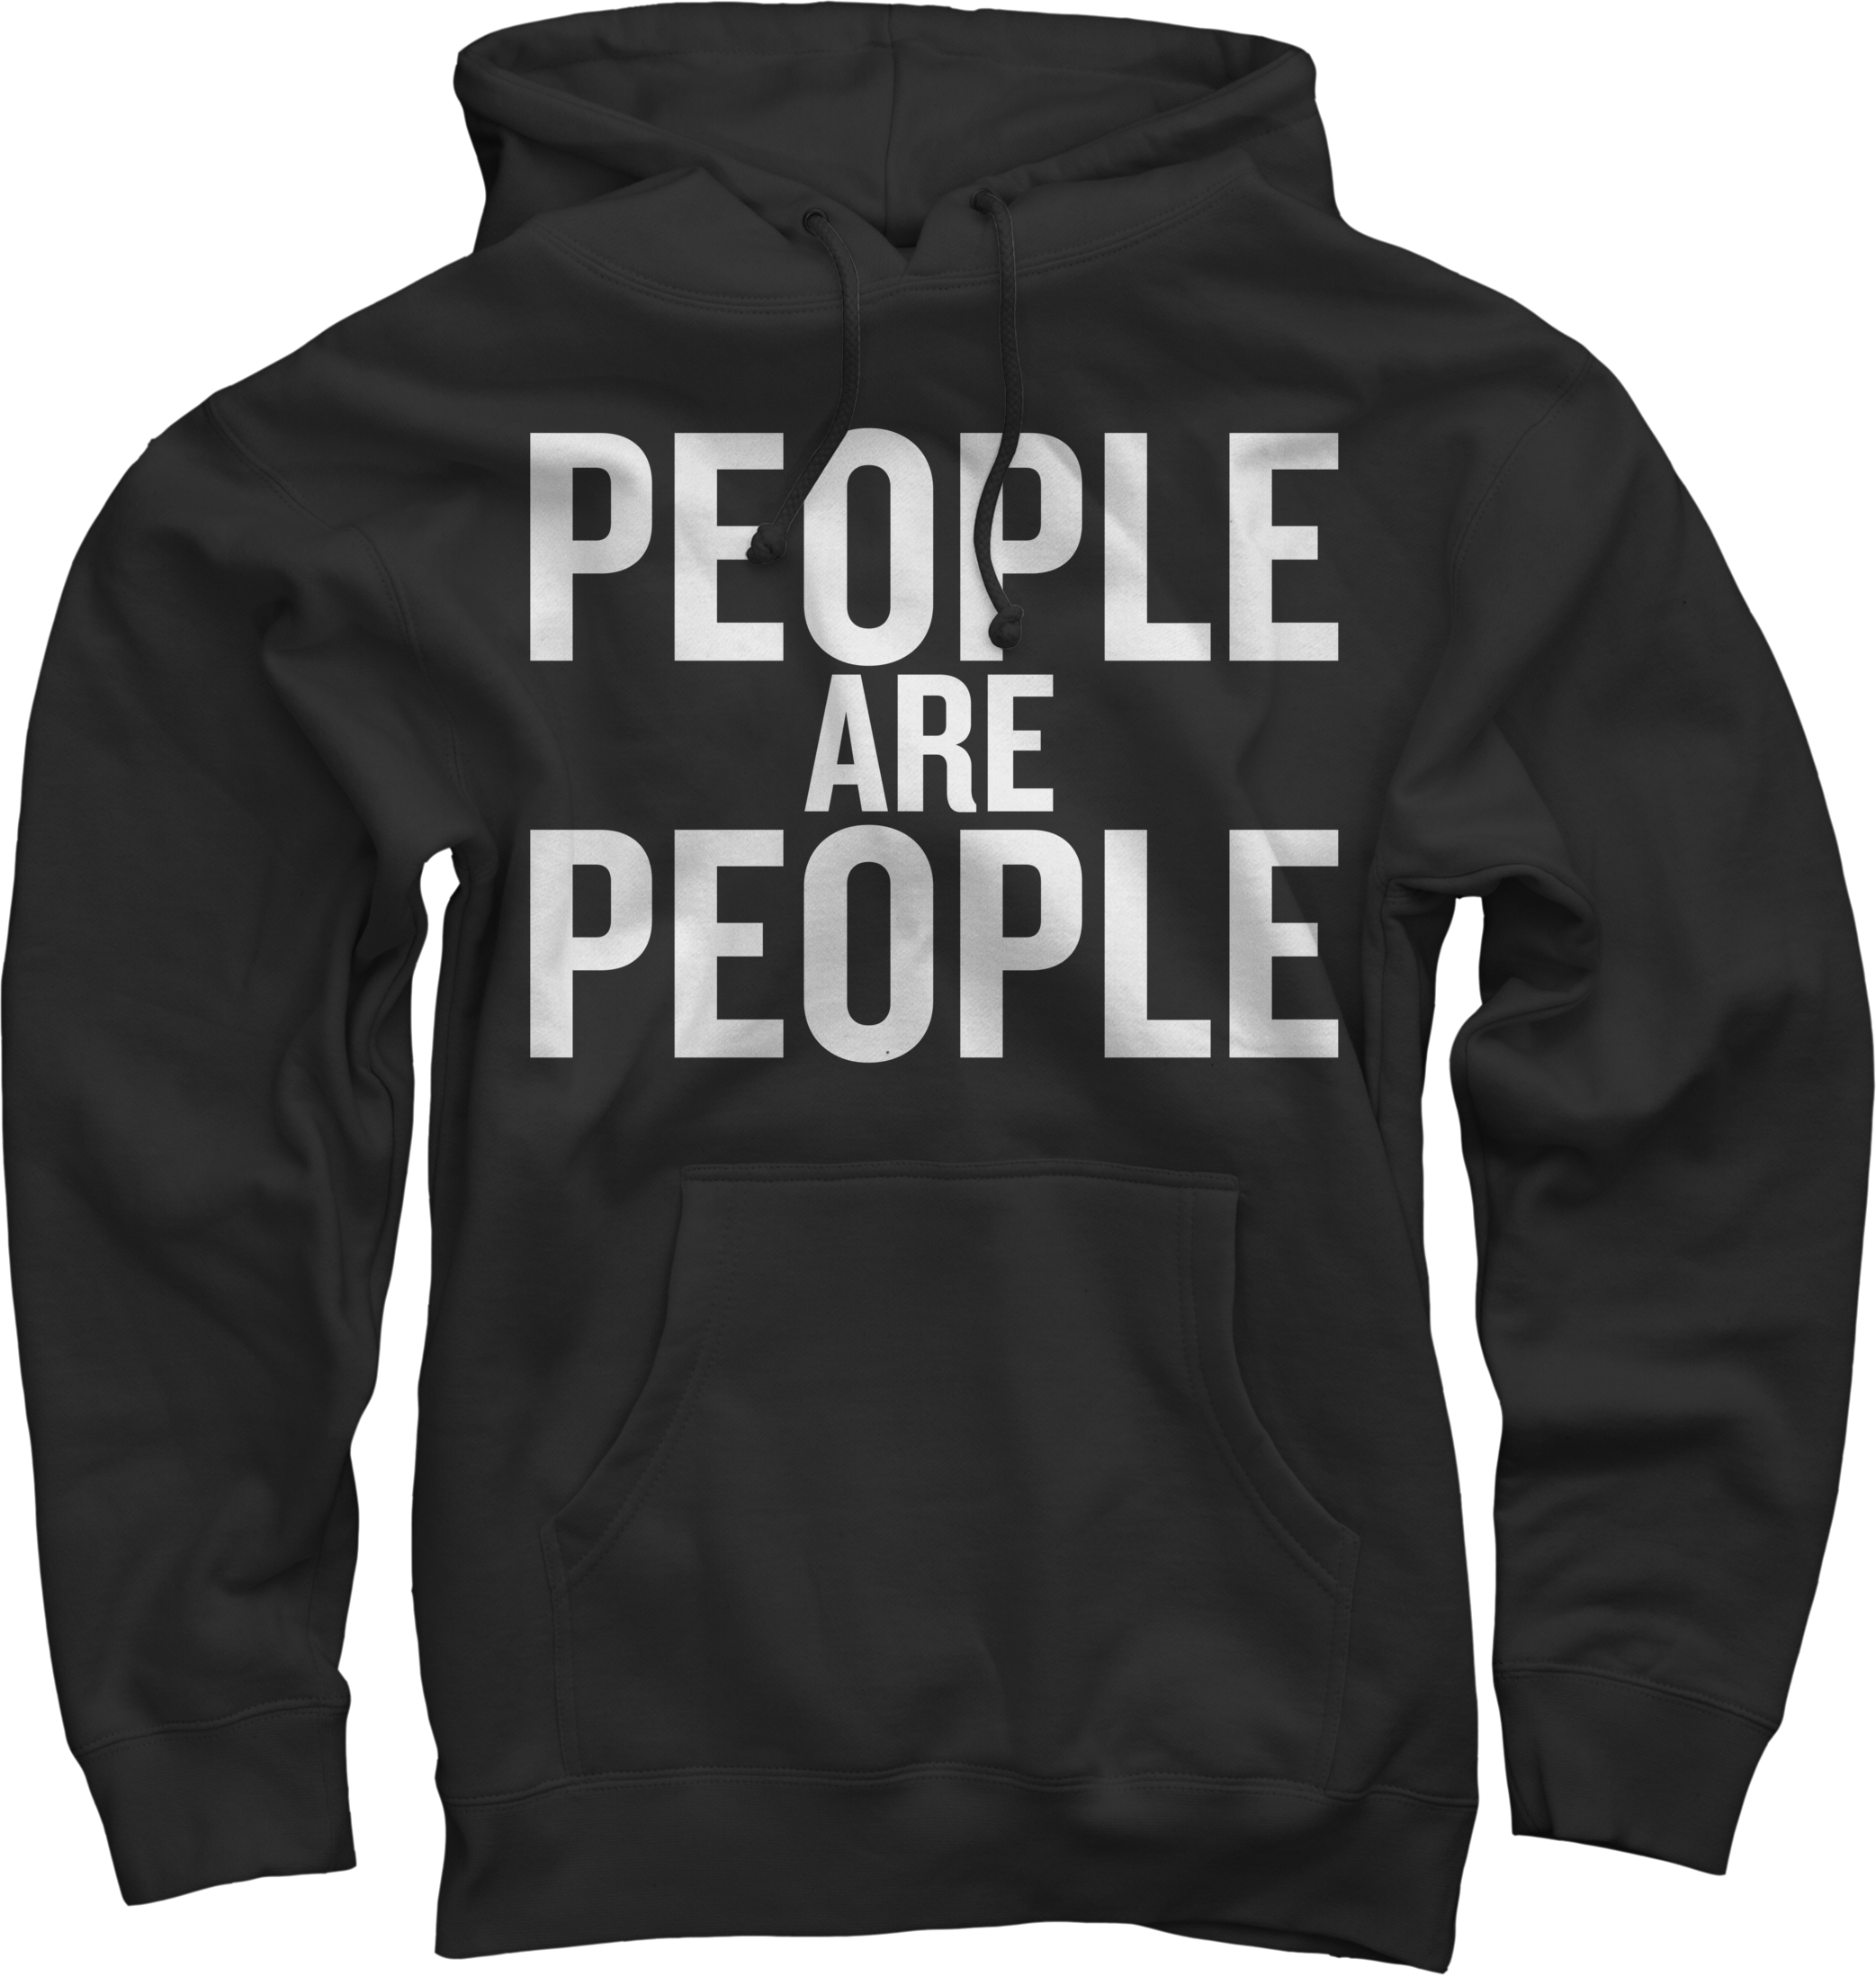 People Are People White on Black Sweatshirt